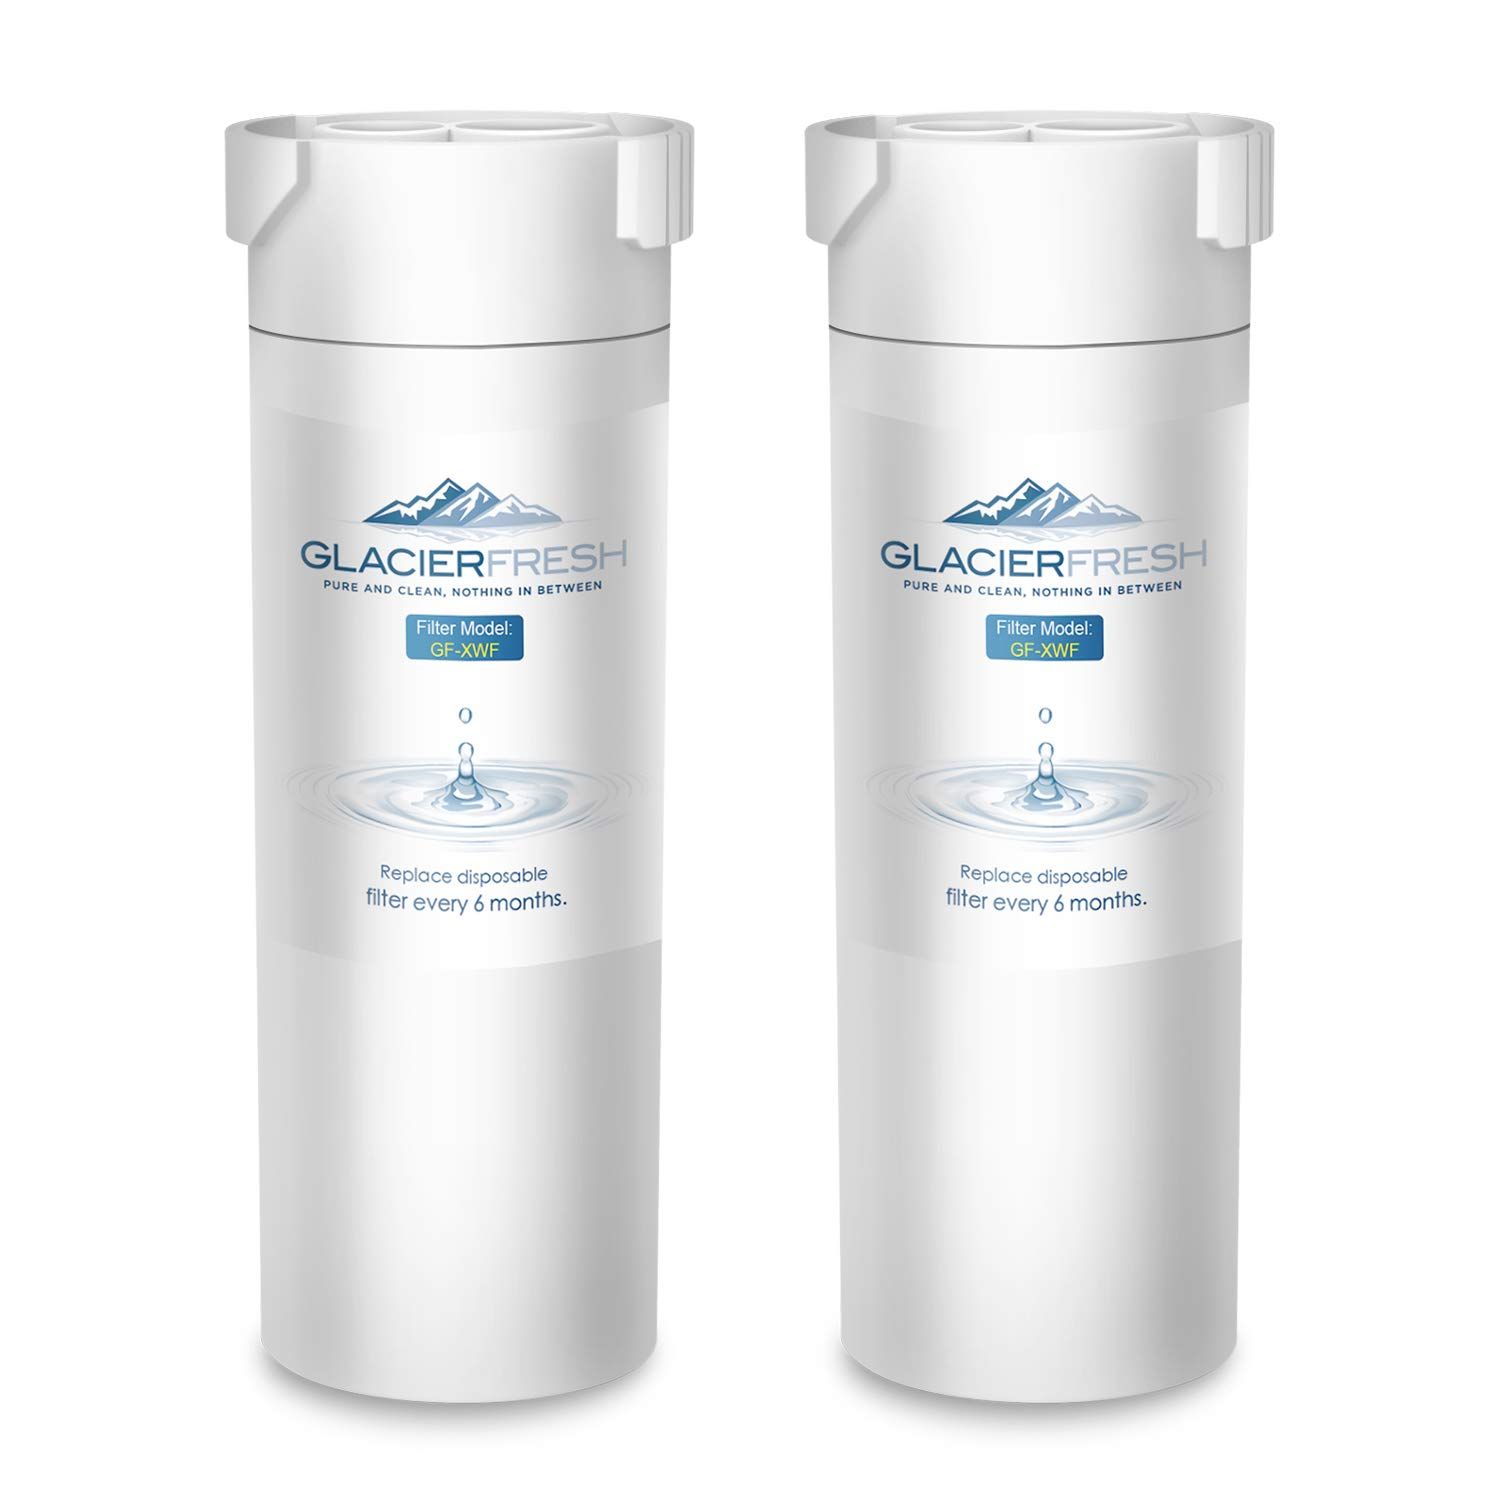 GLACIER FRESH XWF Replacement For GE XWF Refrigerator Water Filter 2-Pack